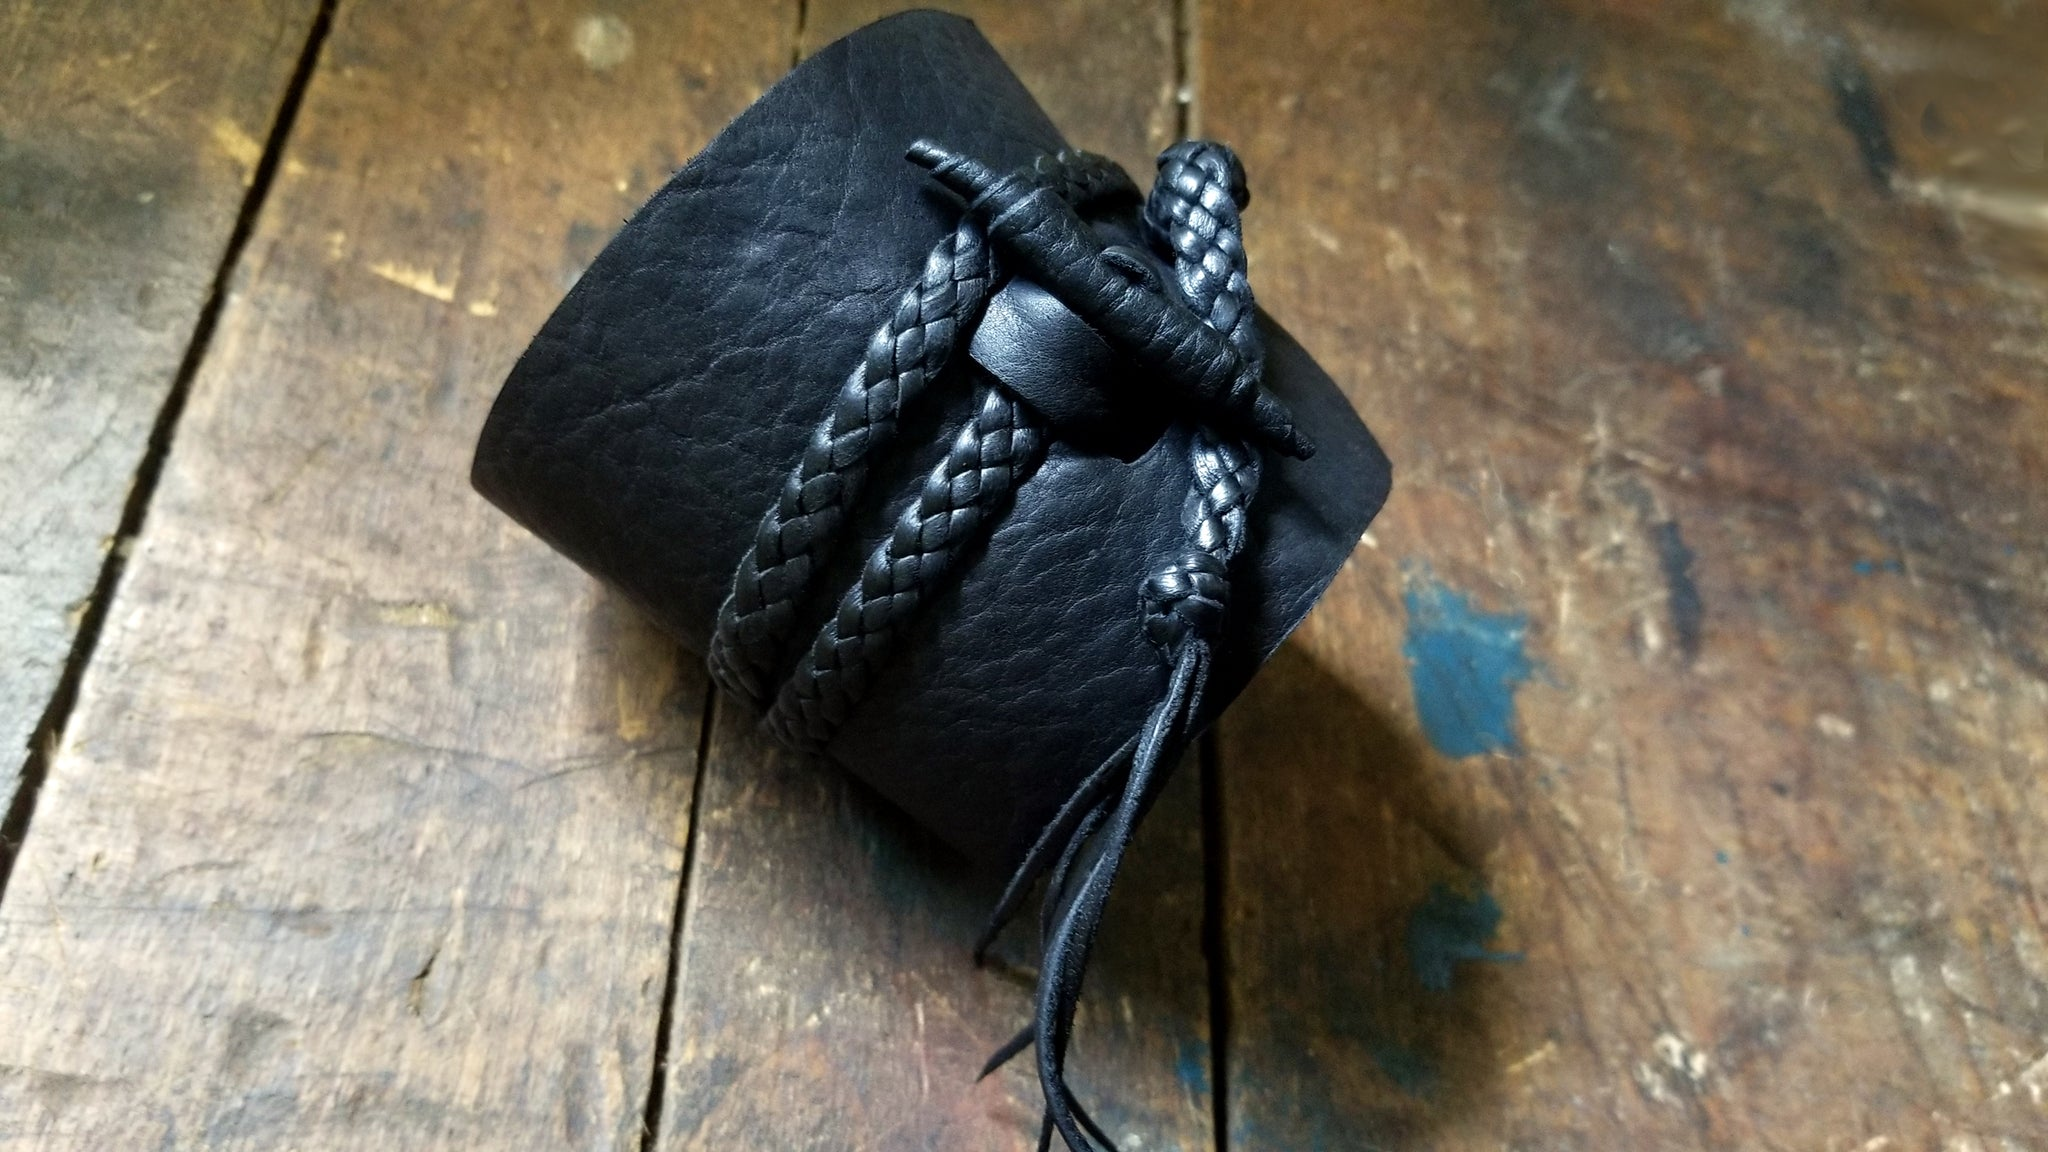 Busajja Bison Leather Wrap Cuff with Braided Deerskin Leather Ties & Bison Button in Black